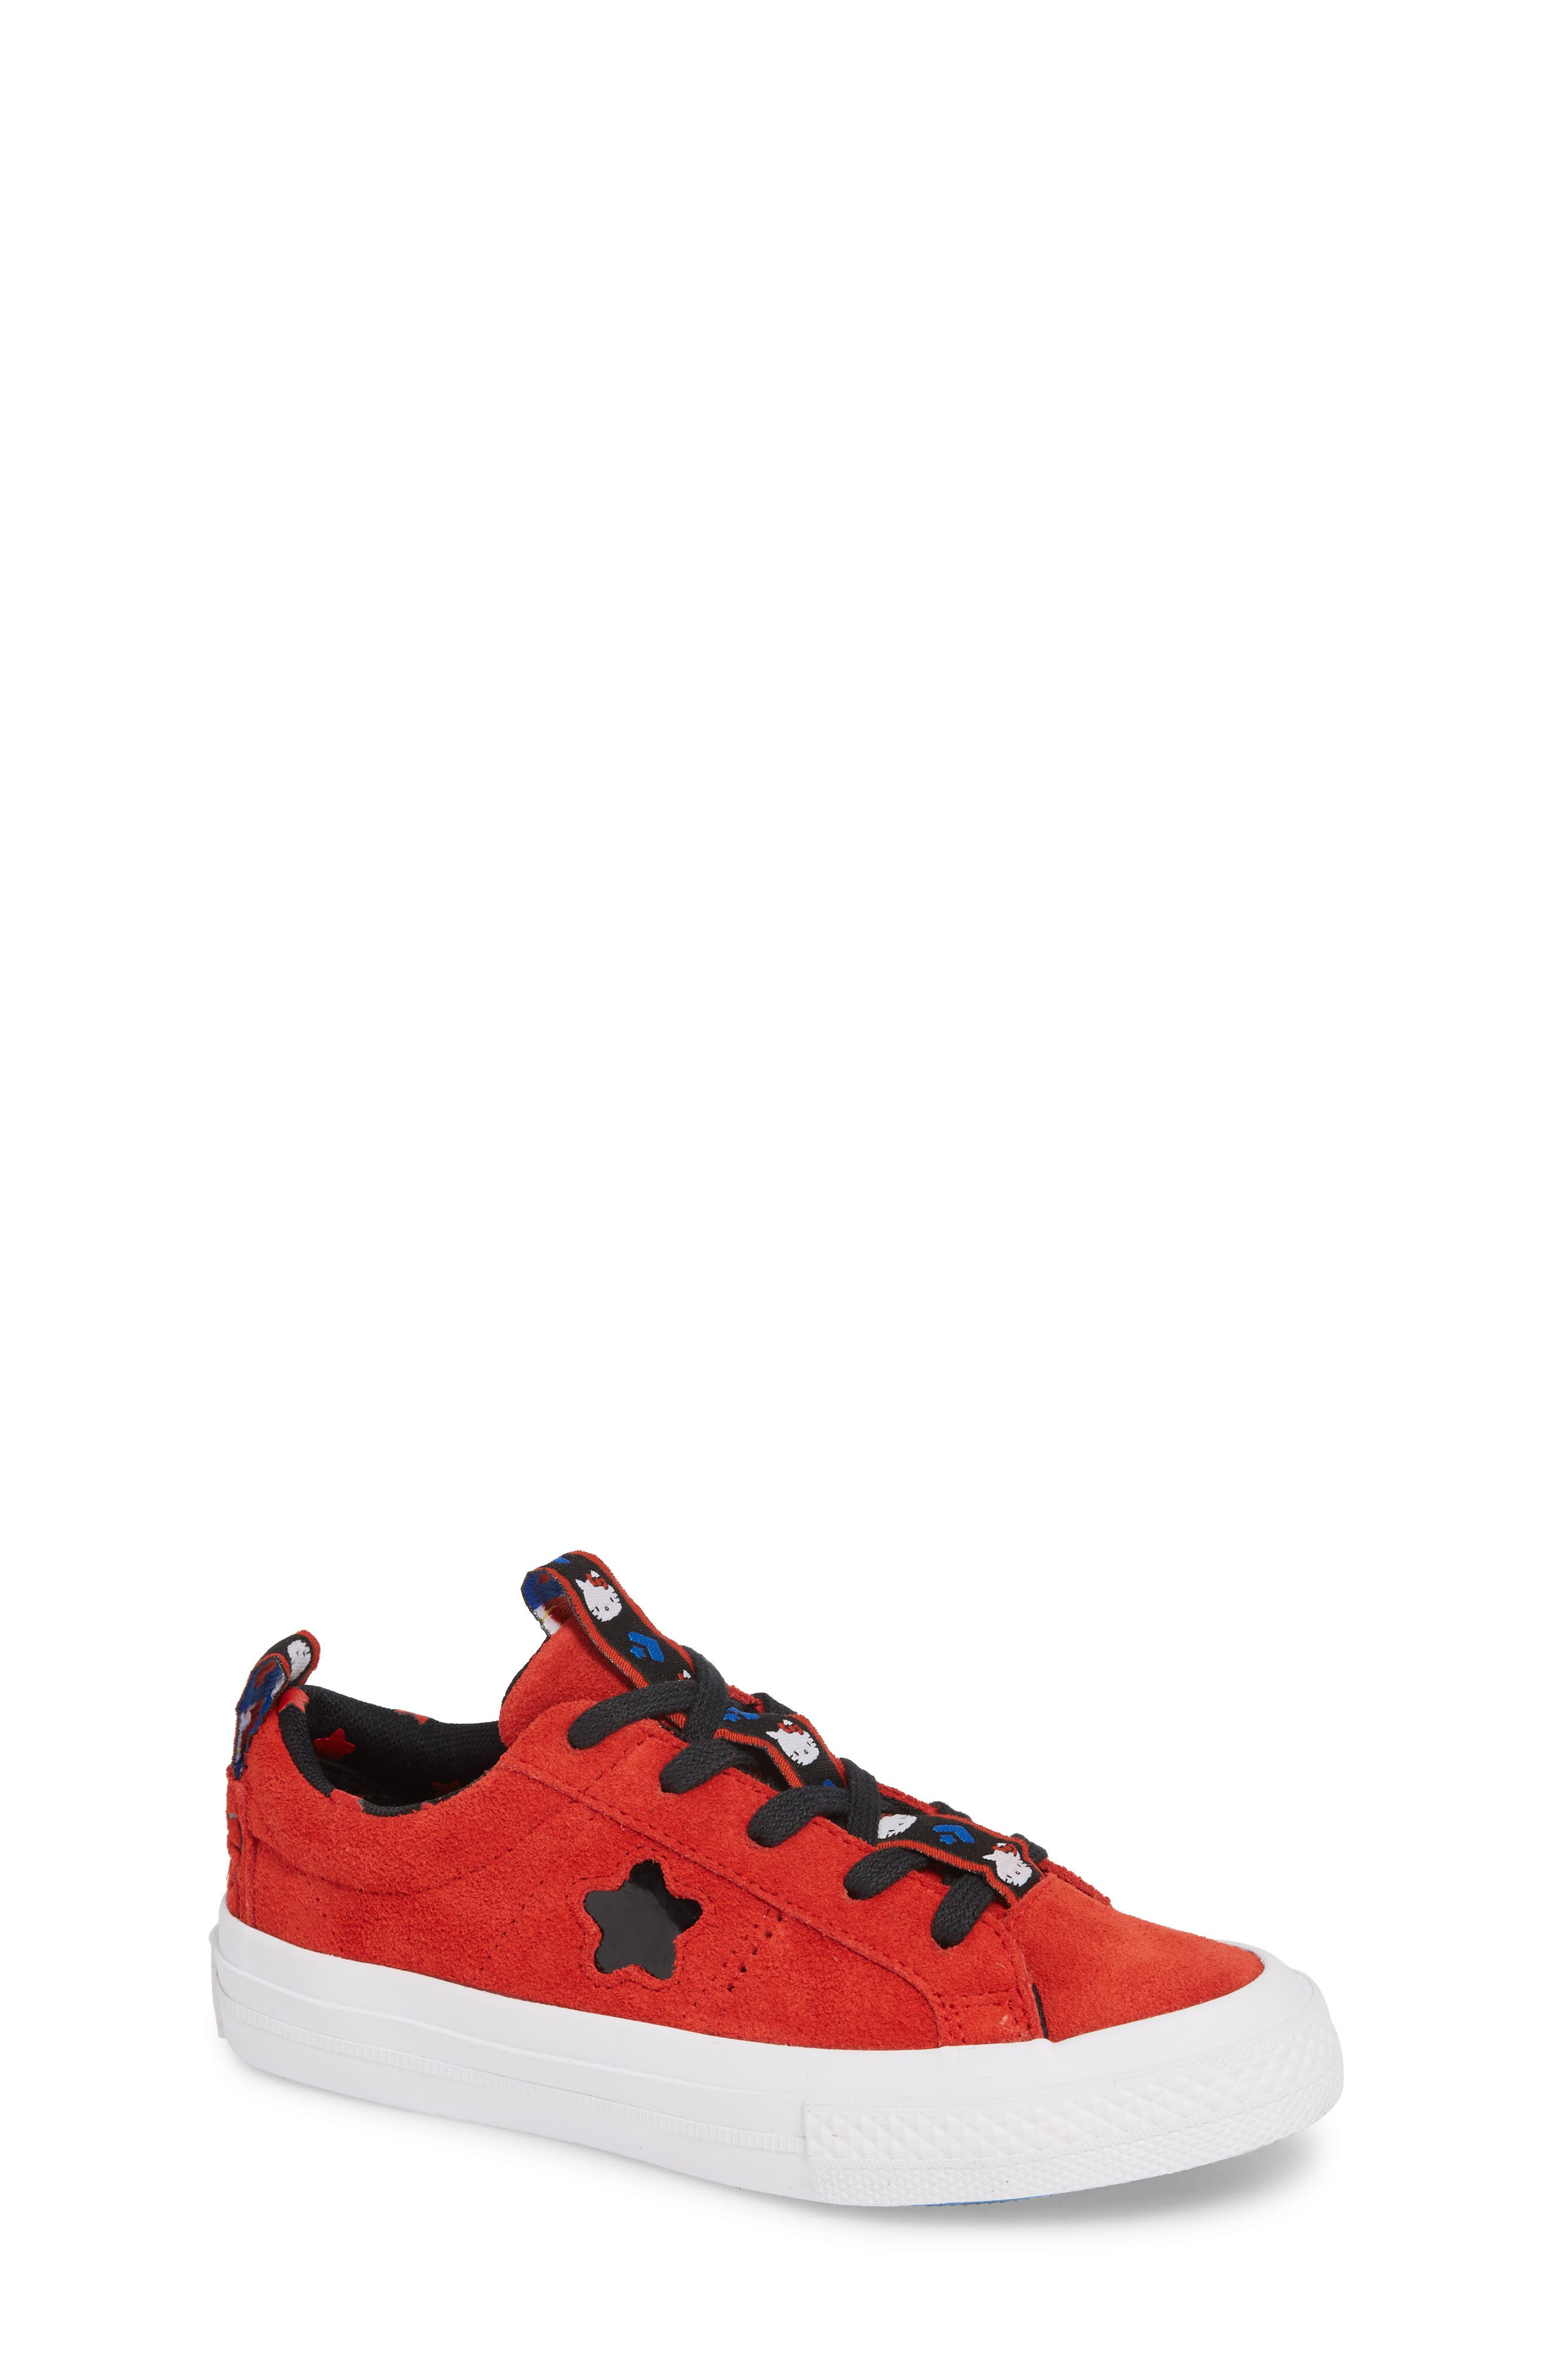 x Hello Kitty<sup>®</sup> One Star Low Top Sneaker, Main, color, FIERY RED SUEDE